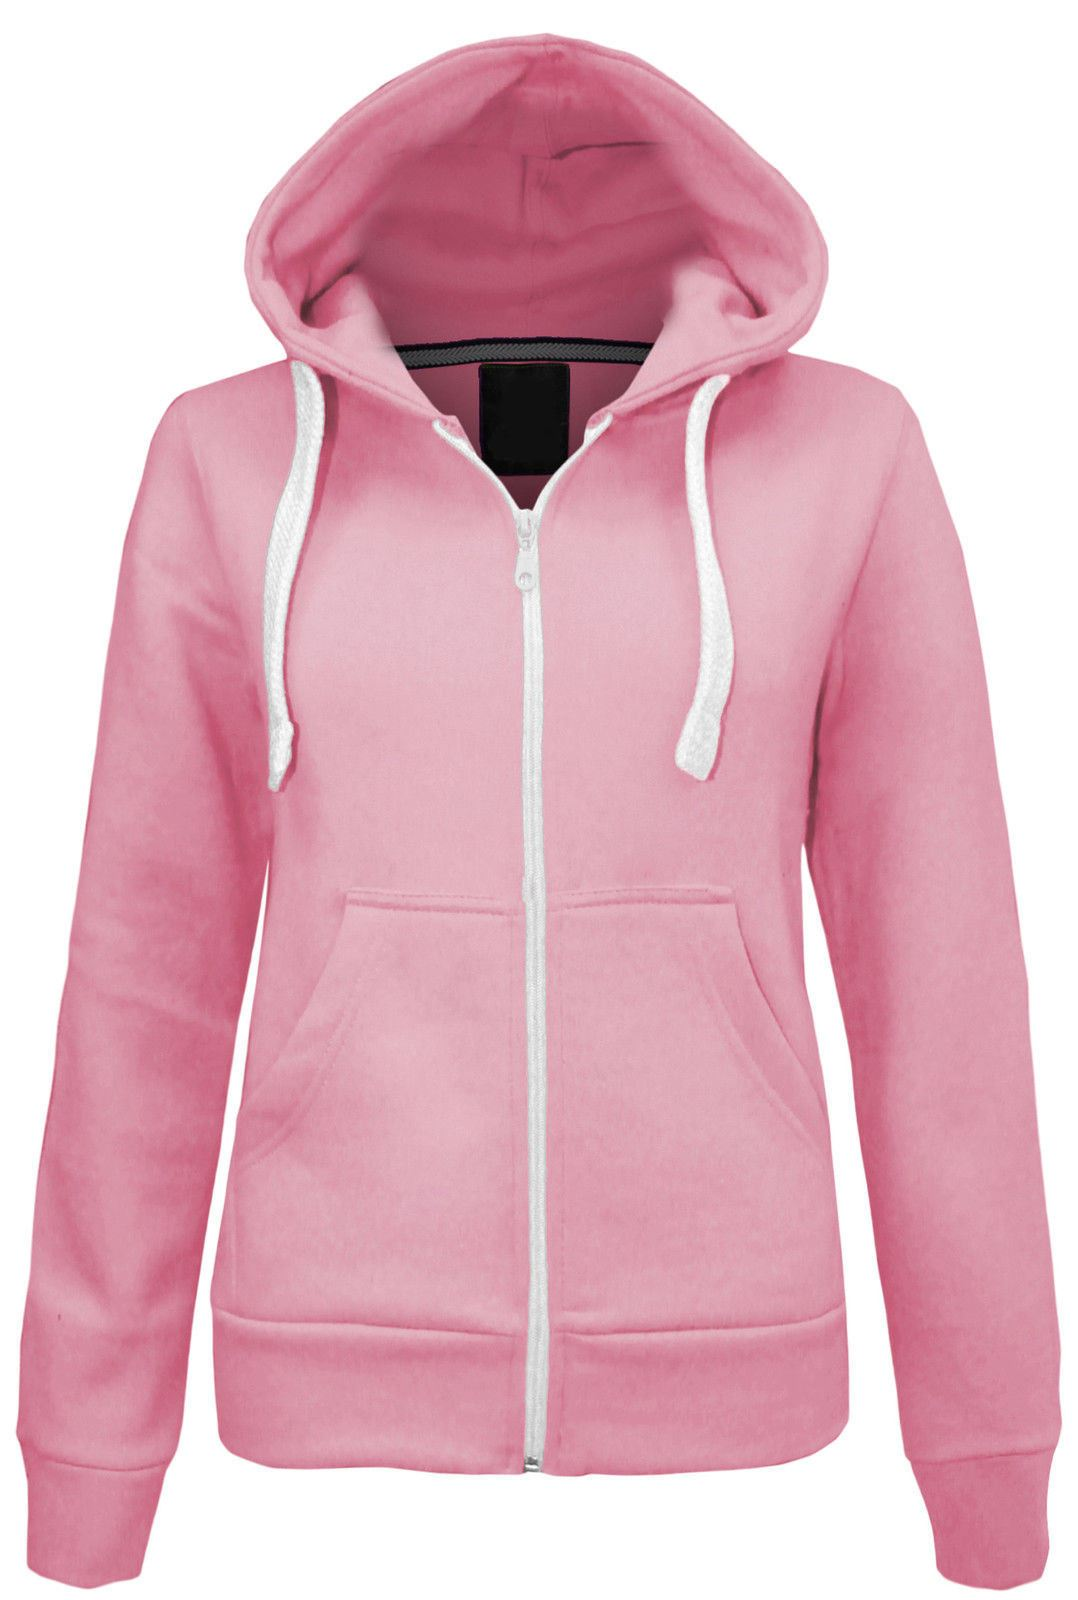 Womens Pink Hoodie Sweatshirt Fashion Ql